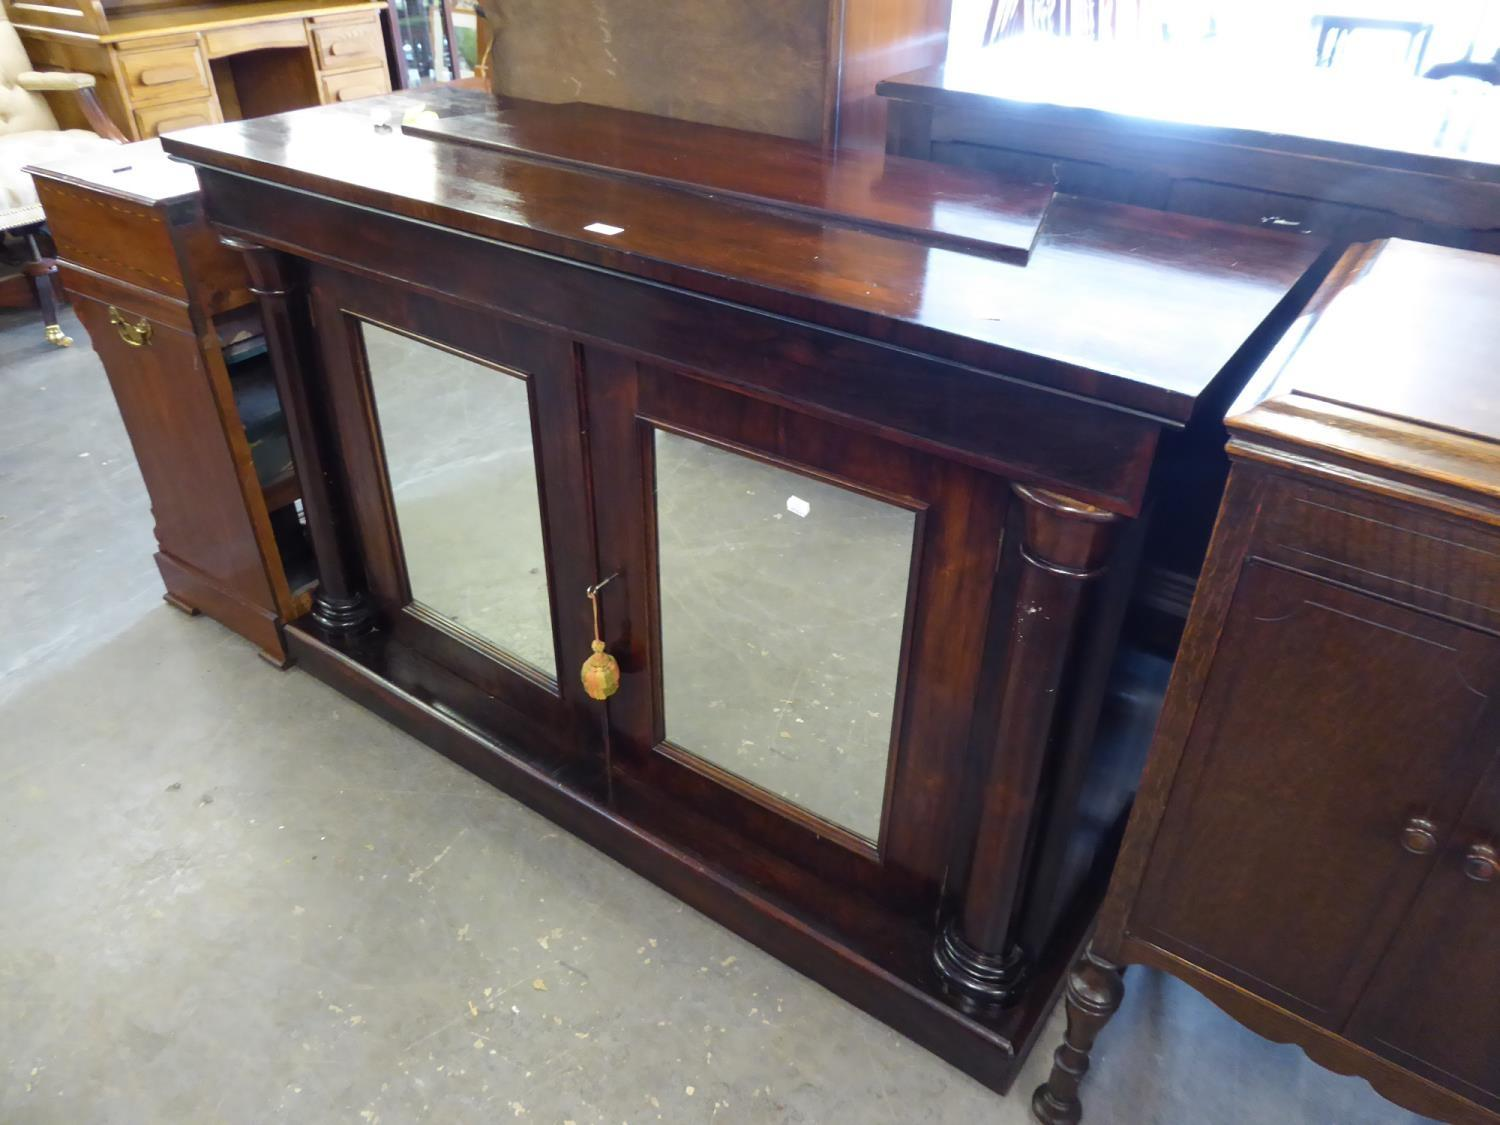 A VICTORIAN SIDEBOARD, WITH MIRRORED TWO DOOR CUPBOARD HAVING INSET COLUMN PILASTERS TO EITHER